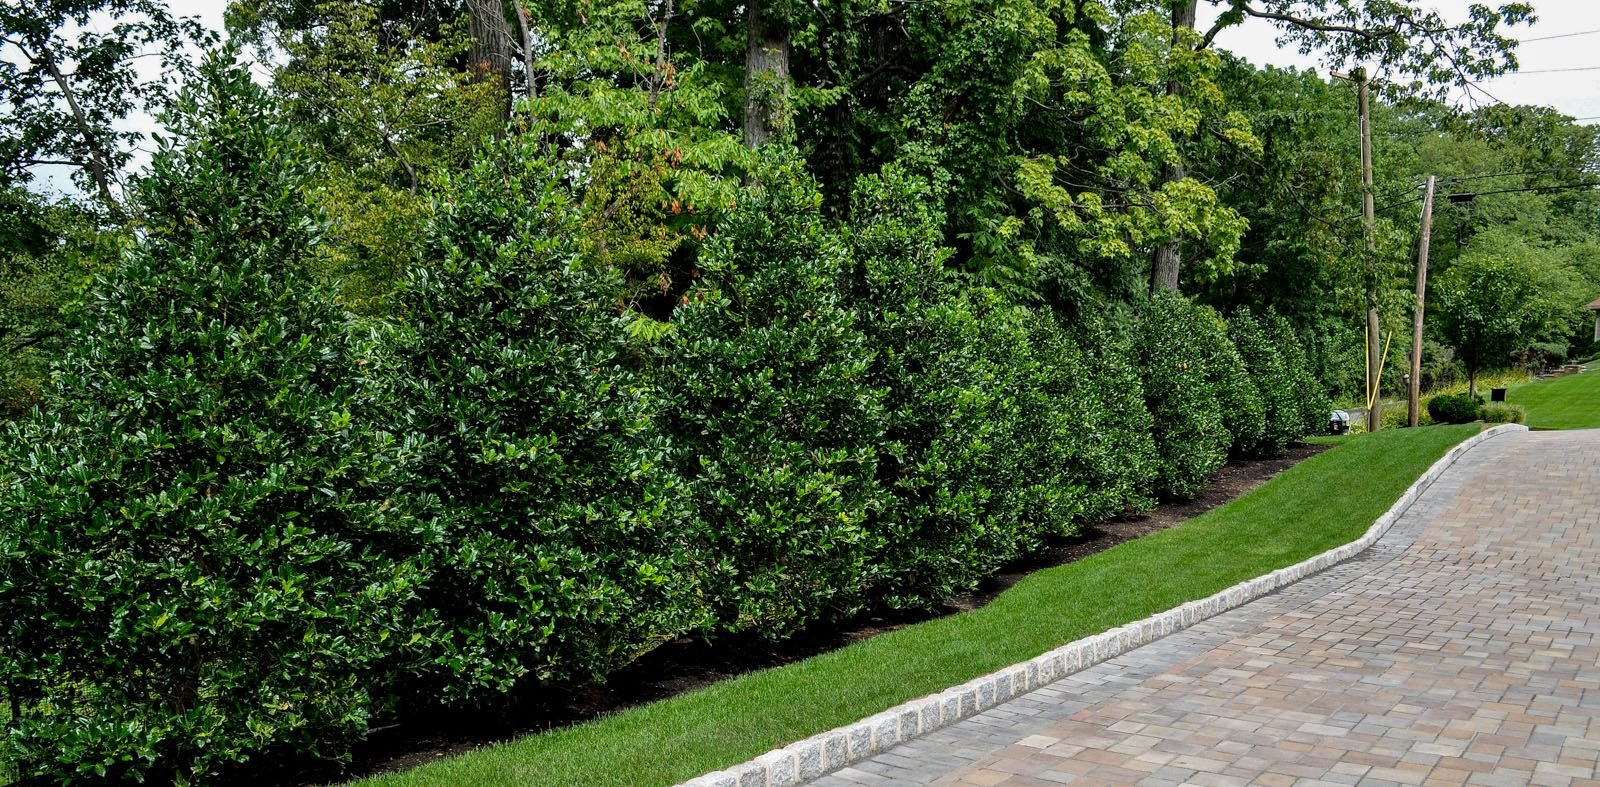 Nellie R. Stevens Holly - 20 Live Plants - Evergreen Privacy Trees by Florida Foliage (Image #6)